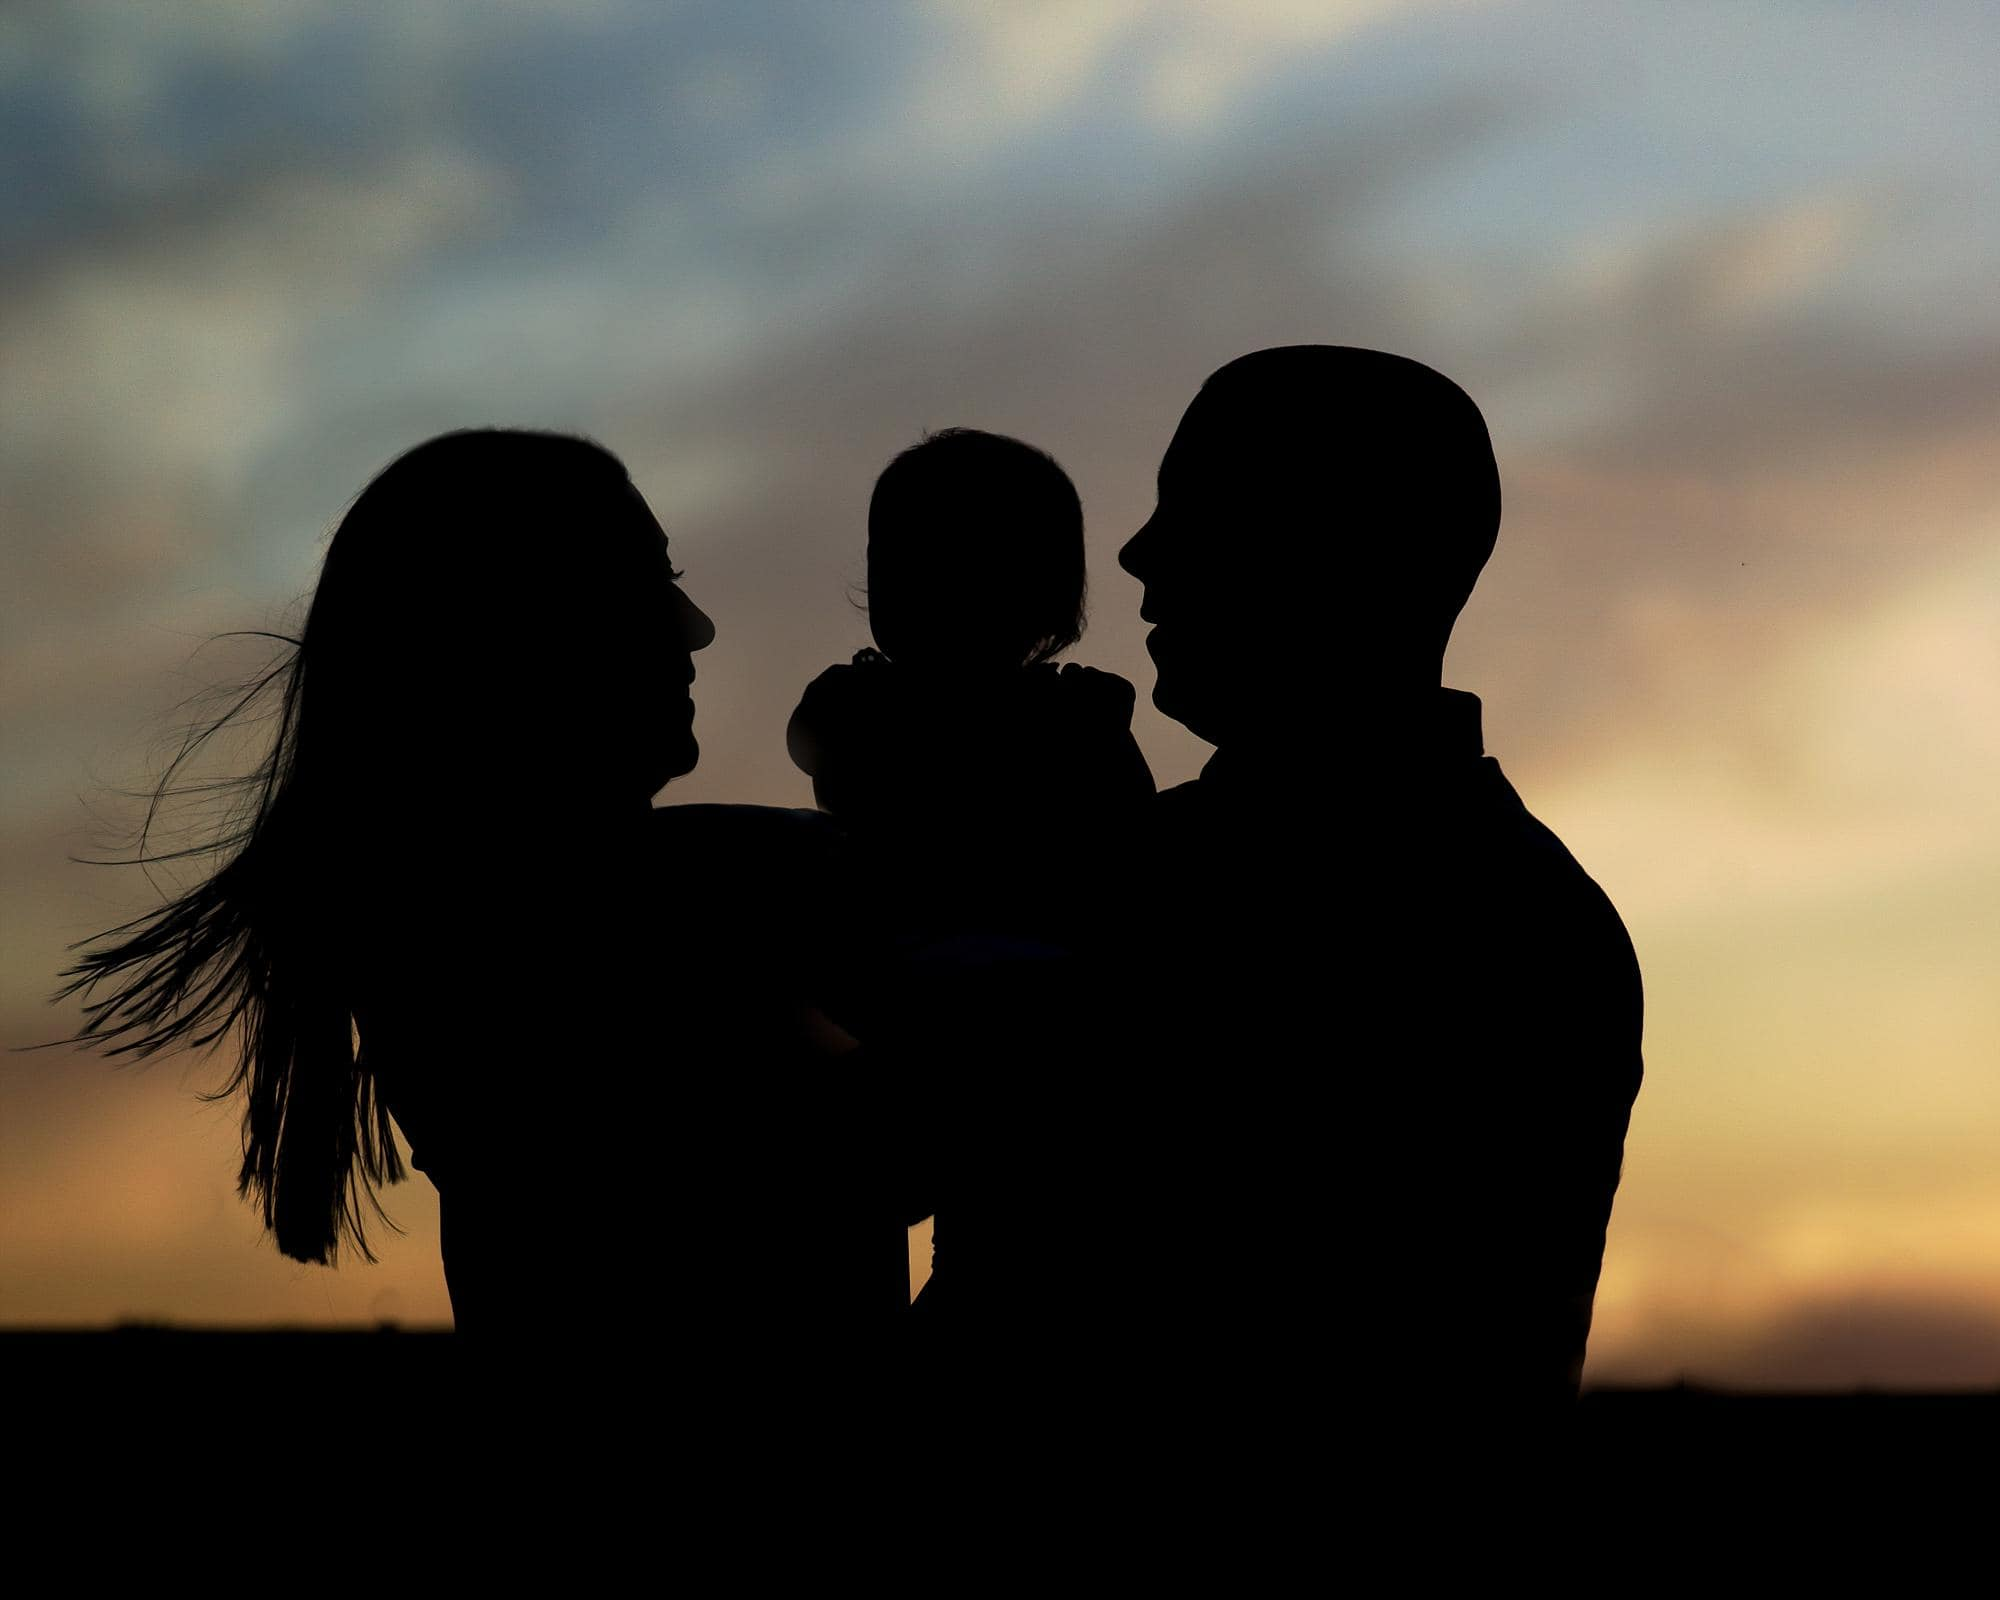 Family of 3 silhouette at sunset